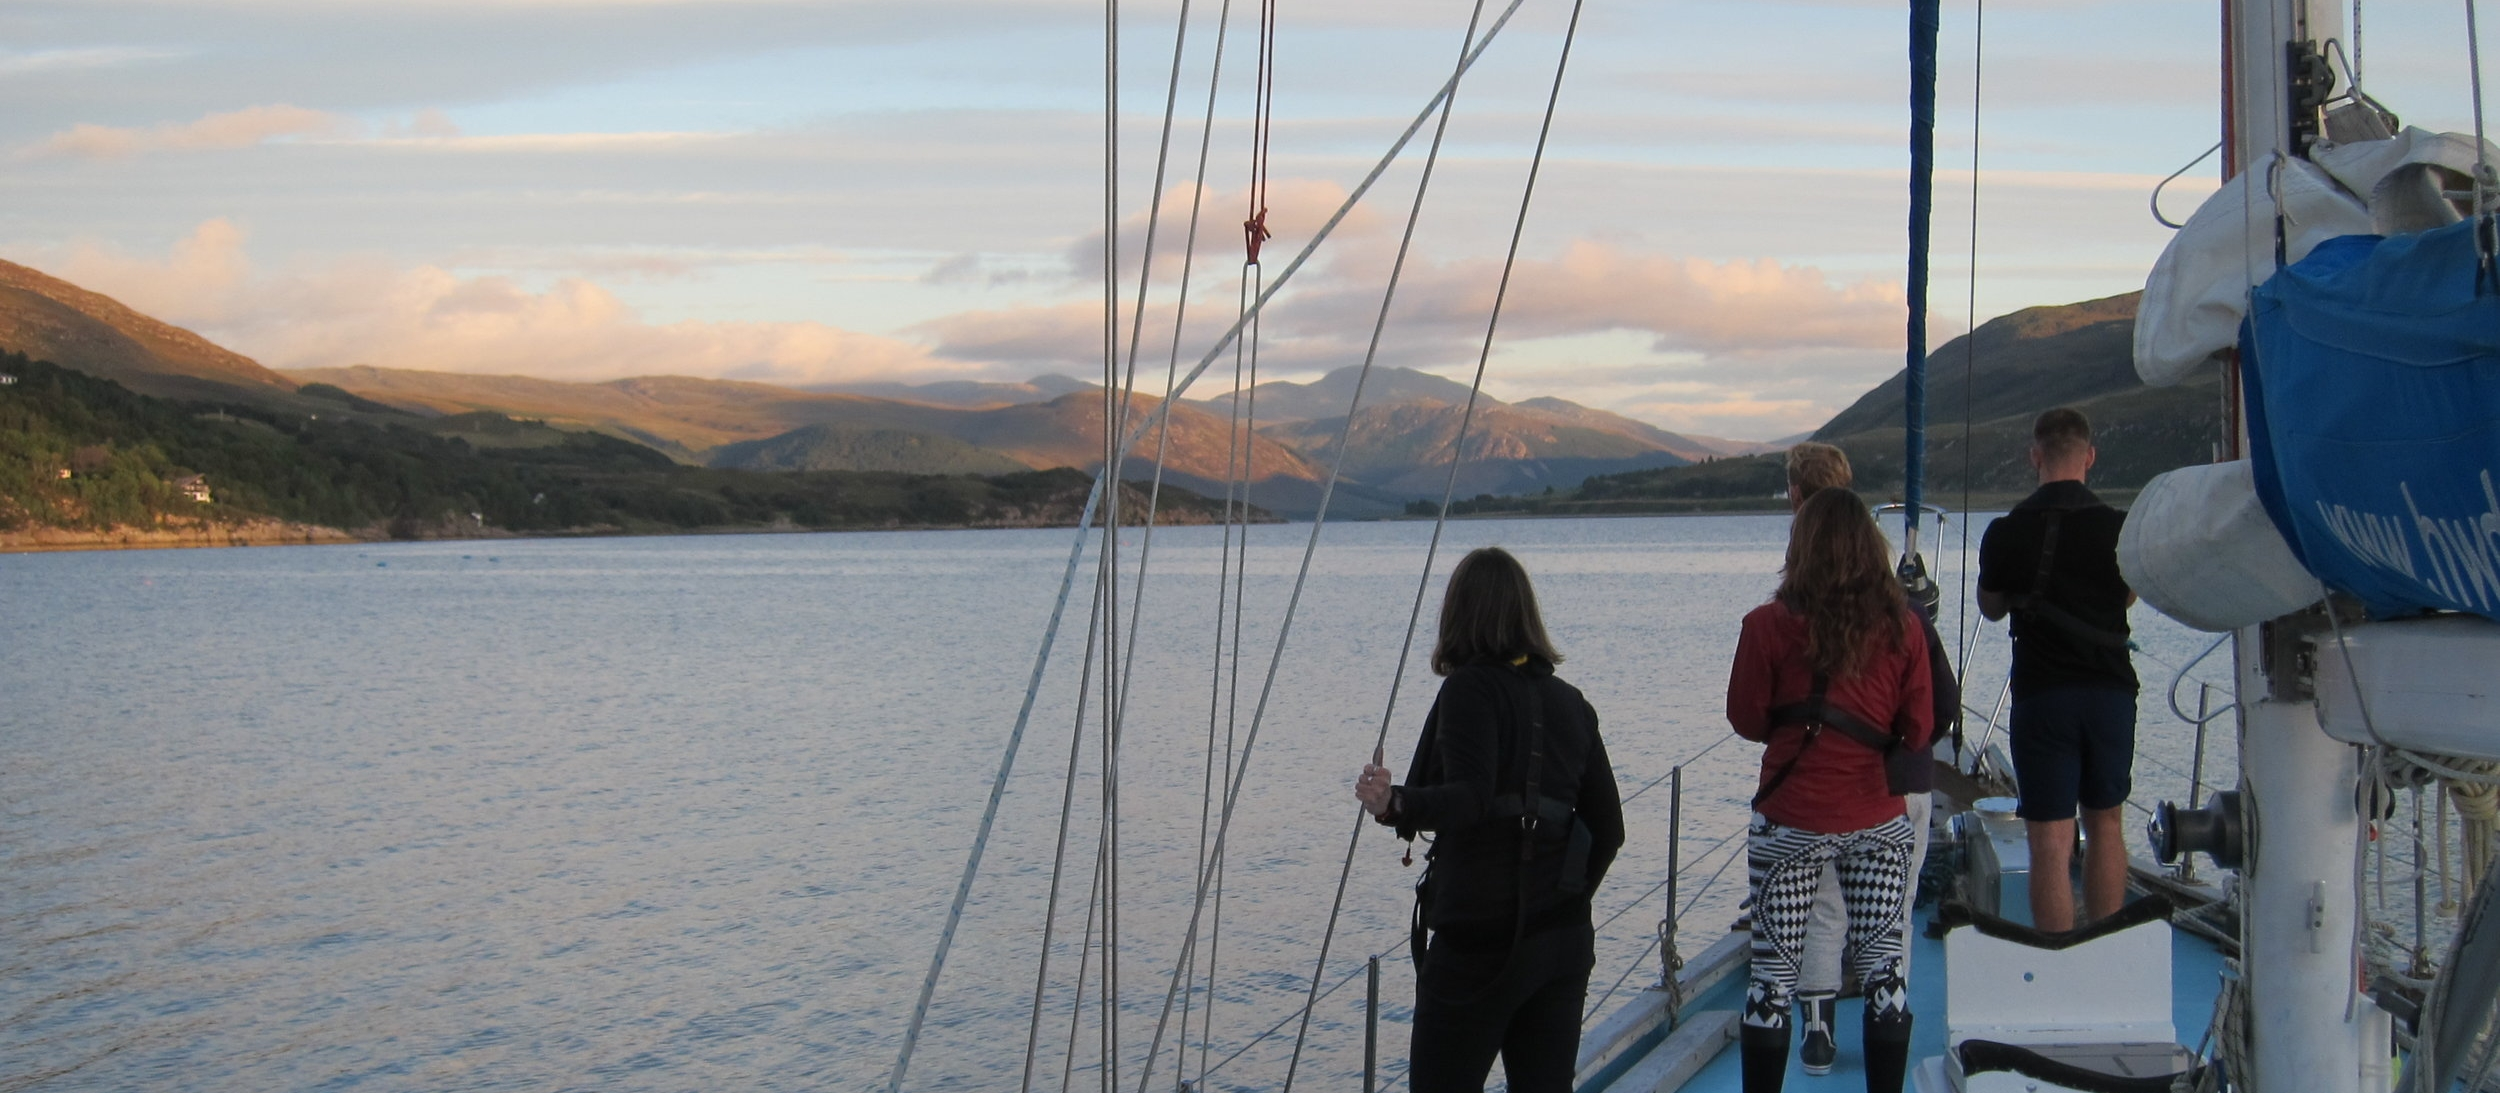 Rendezvous in Ullapool allows for the exploration of some of the more northern reaches of our study area